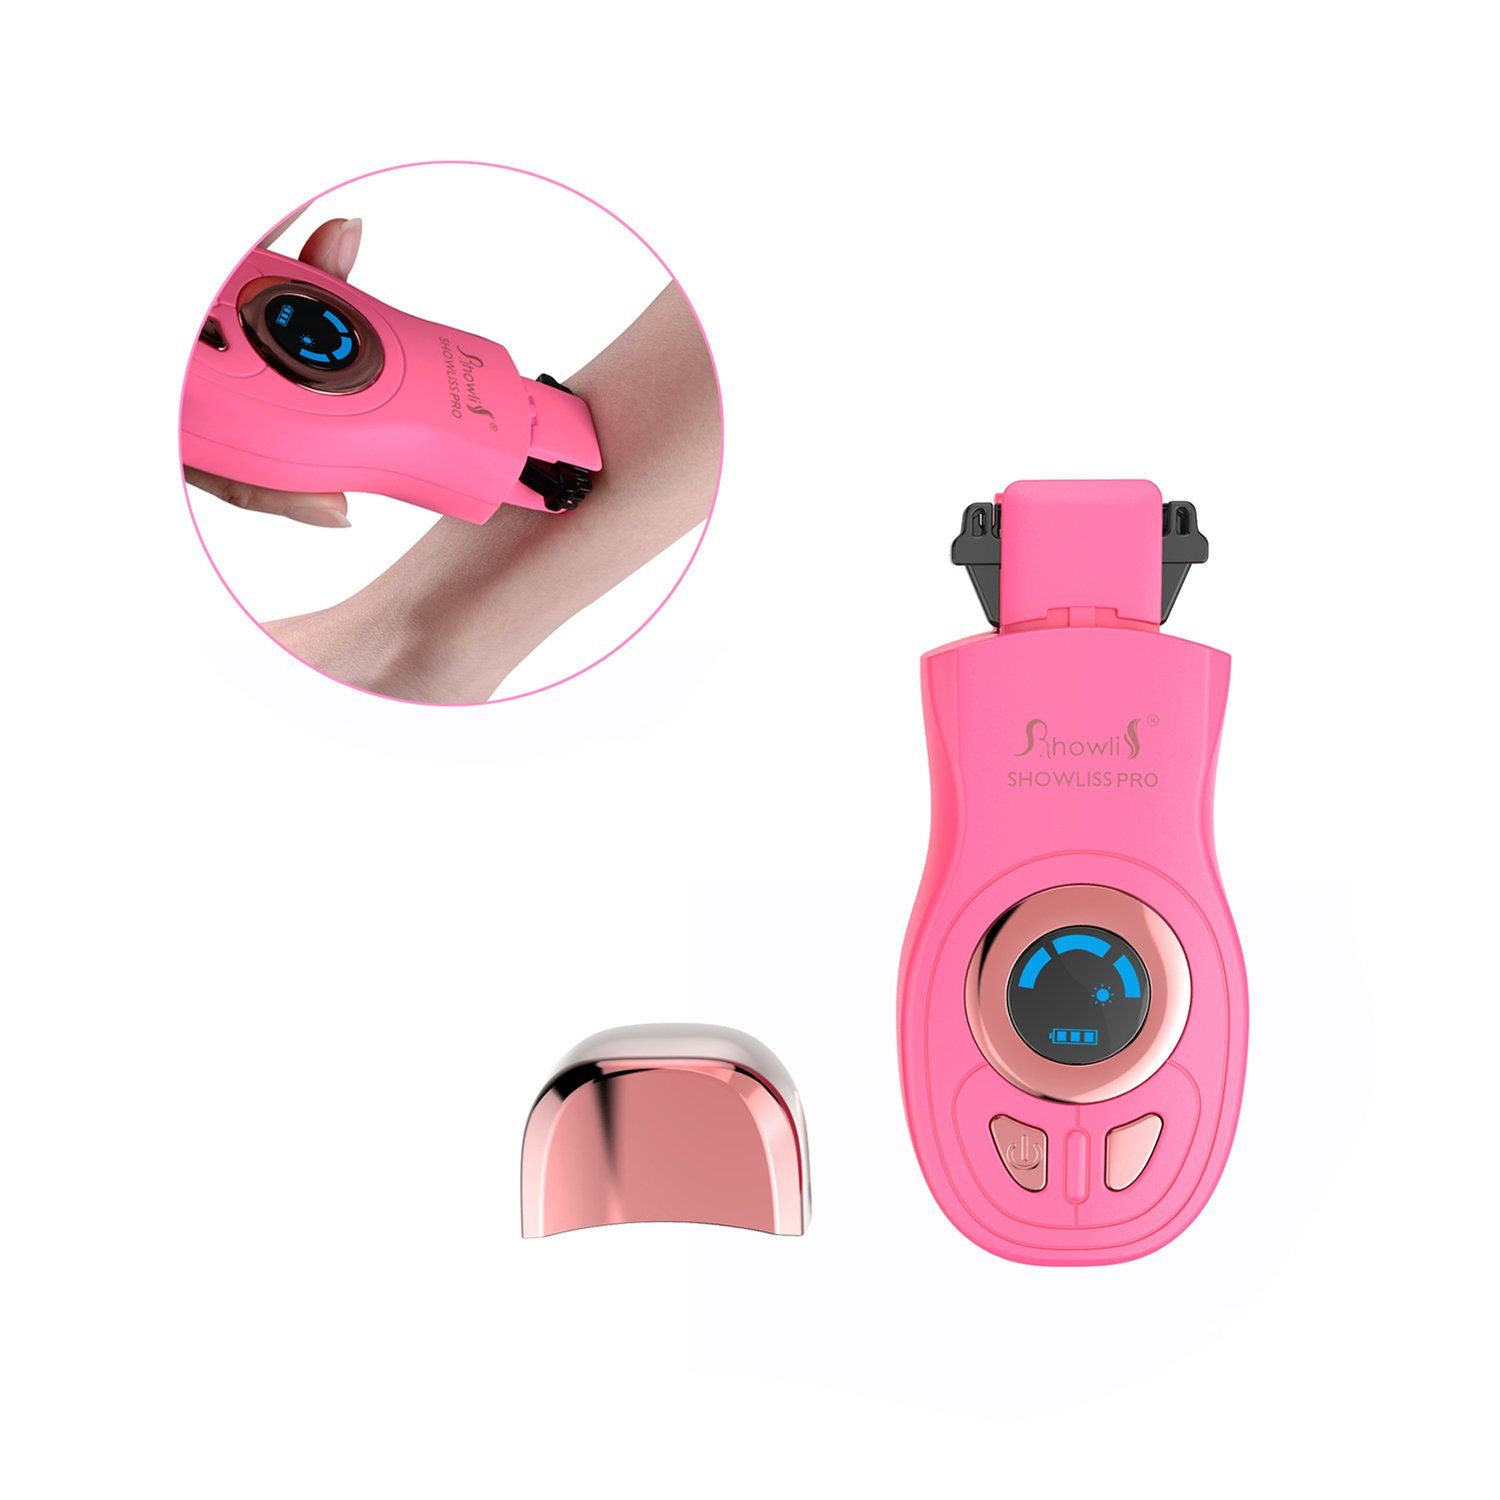 Showliss Hair Removal System, Newest Design Hair Removal Machine with Dual Thermal Fuse Heating System - PD11 (Pink) TRTAZ11A